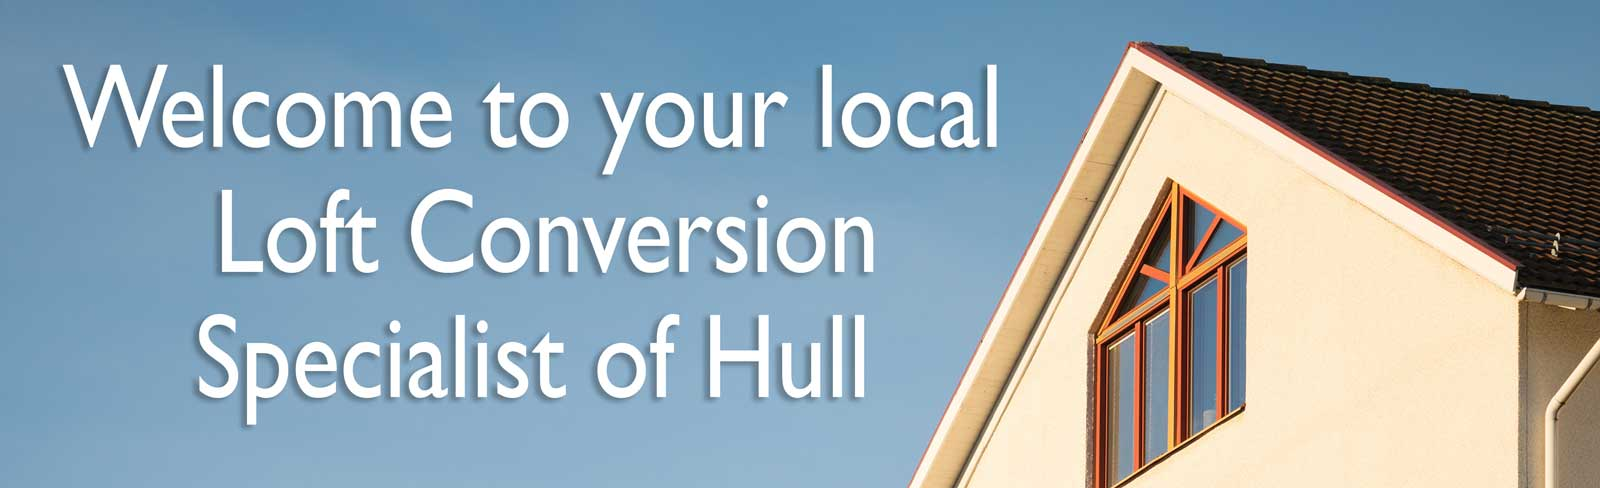 welcome-loft-conversion-specialists-hull-contemporary-attic-bedroom